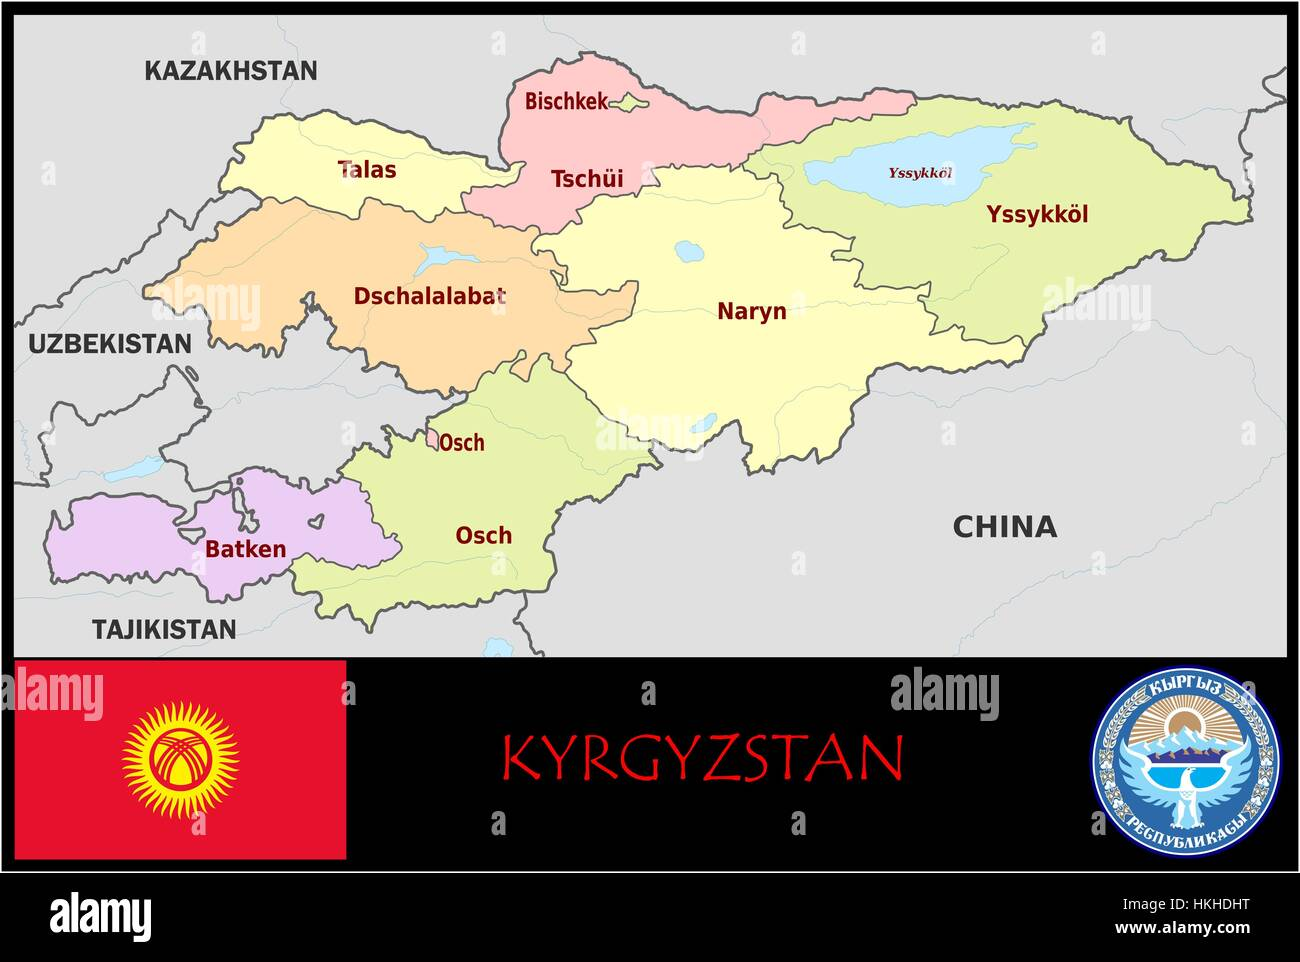 Kyrgyzstan administrative divisions Stock Photo: 132534916 ...